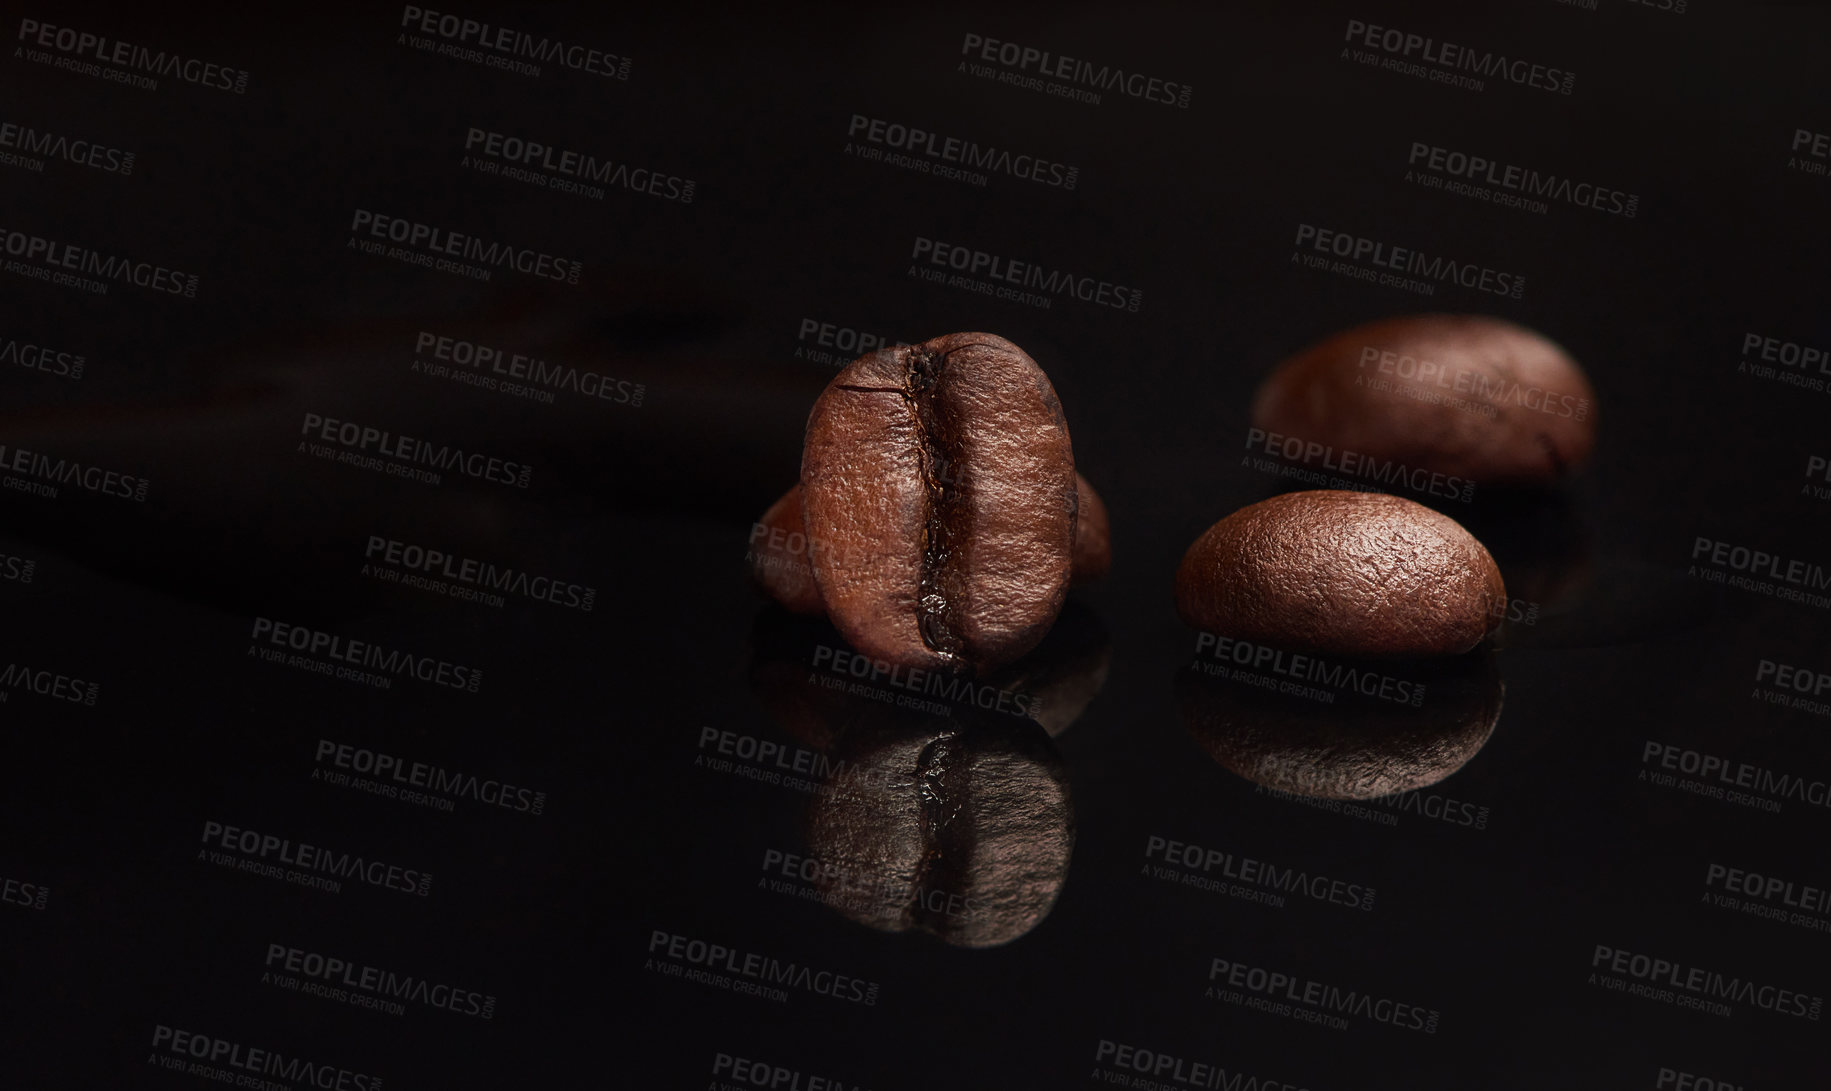 Buy stock photo Studio shot of coffee beans against a black background